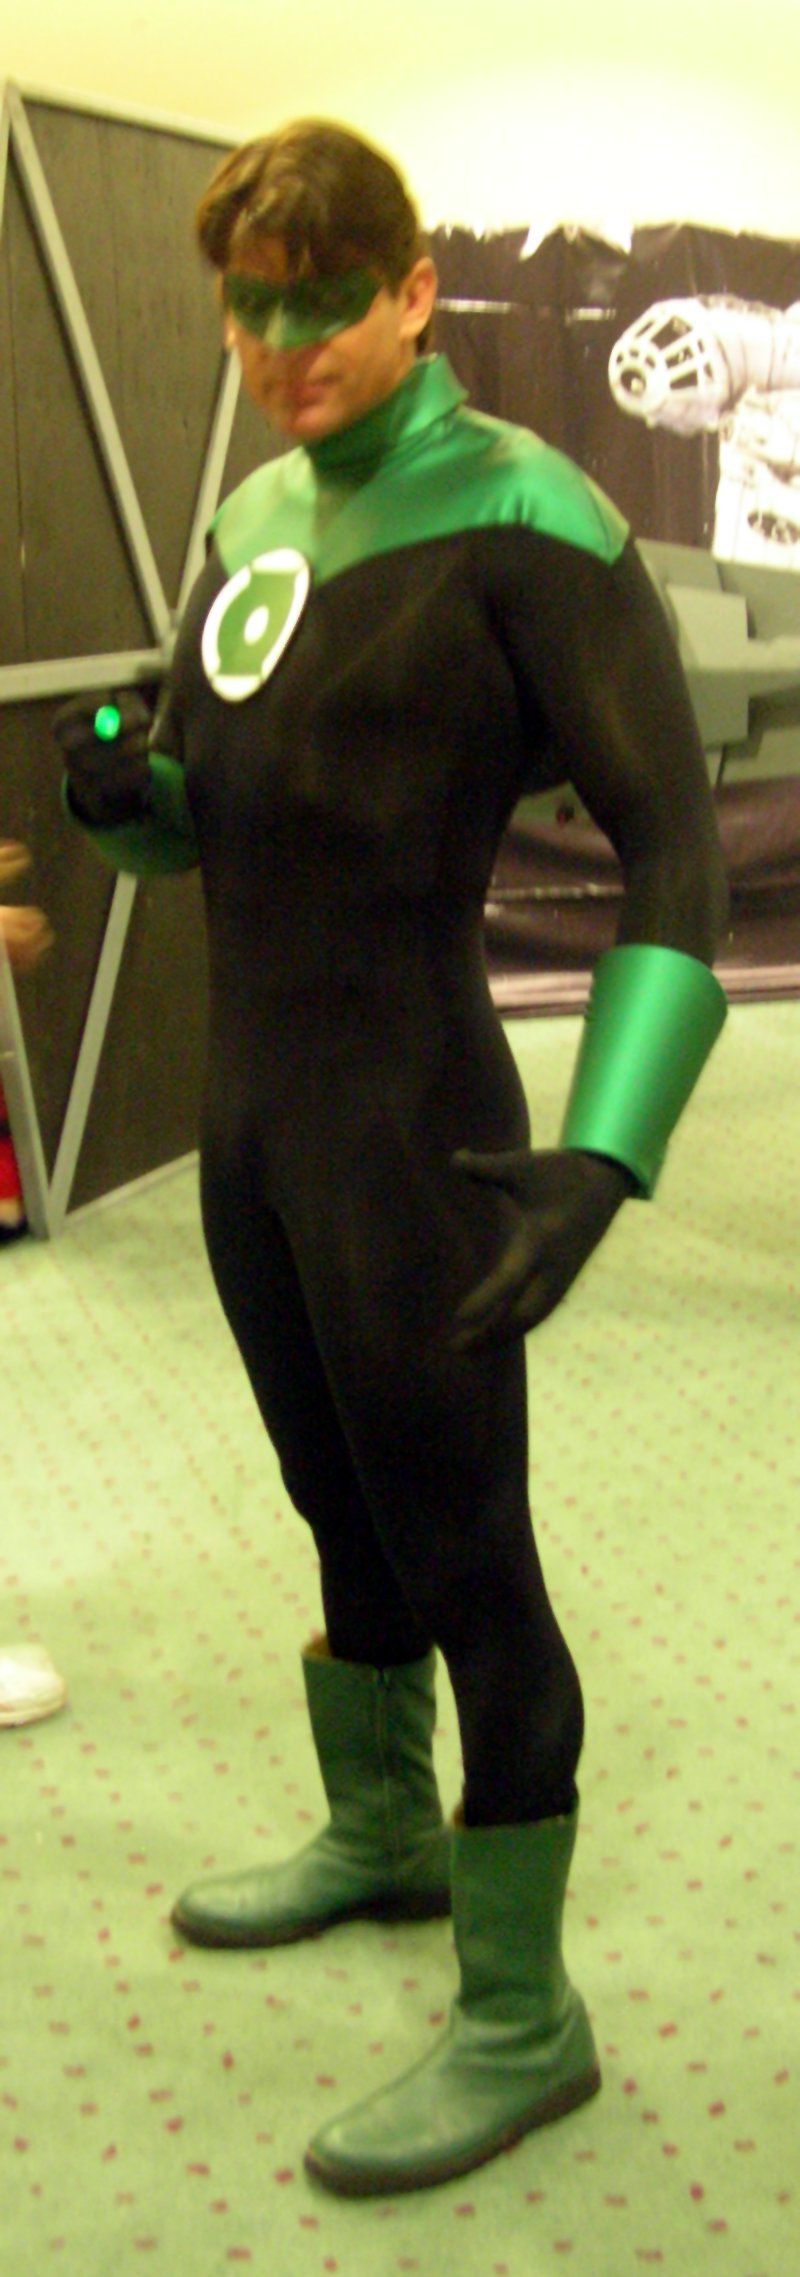 SFX-Fan Expo Cosplay 2009 15 (Green Lantern) by Neville6000